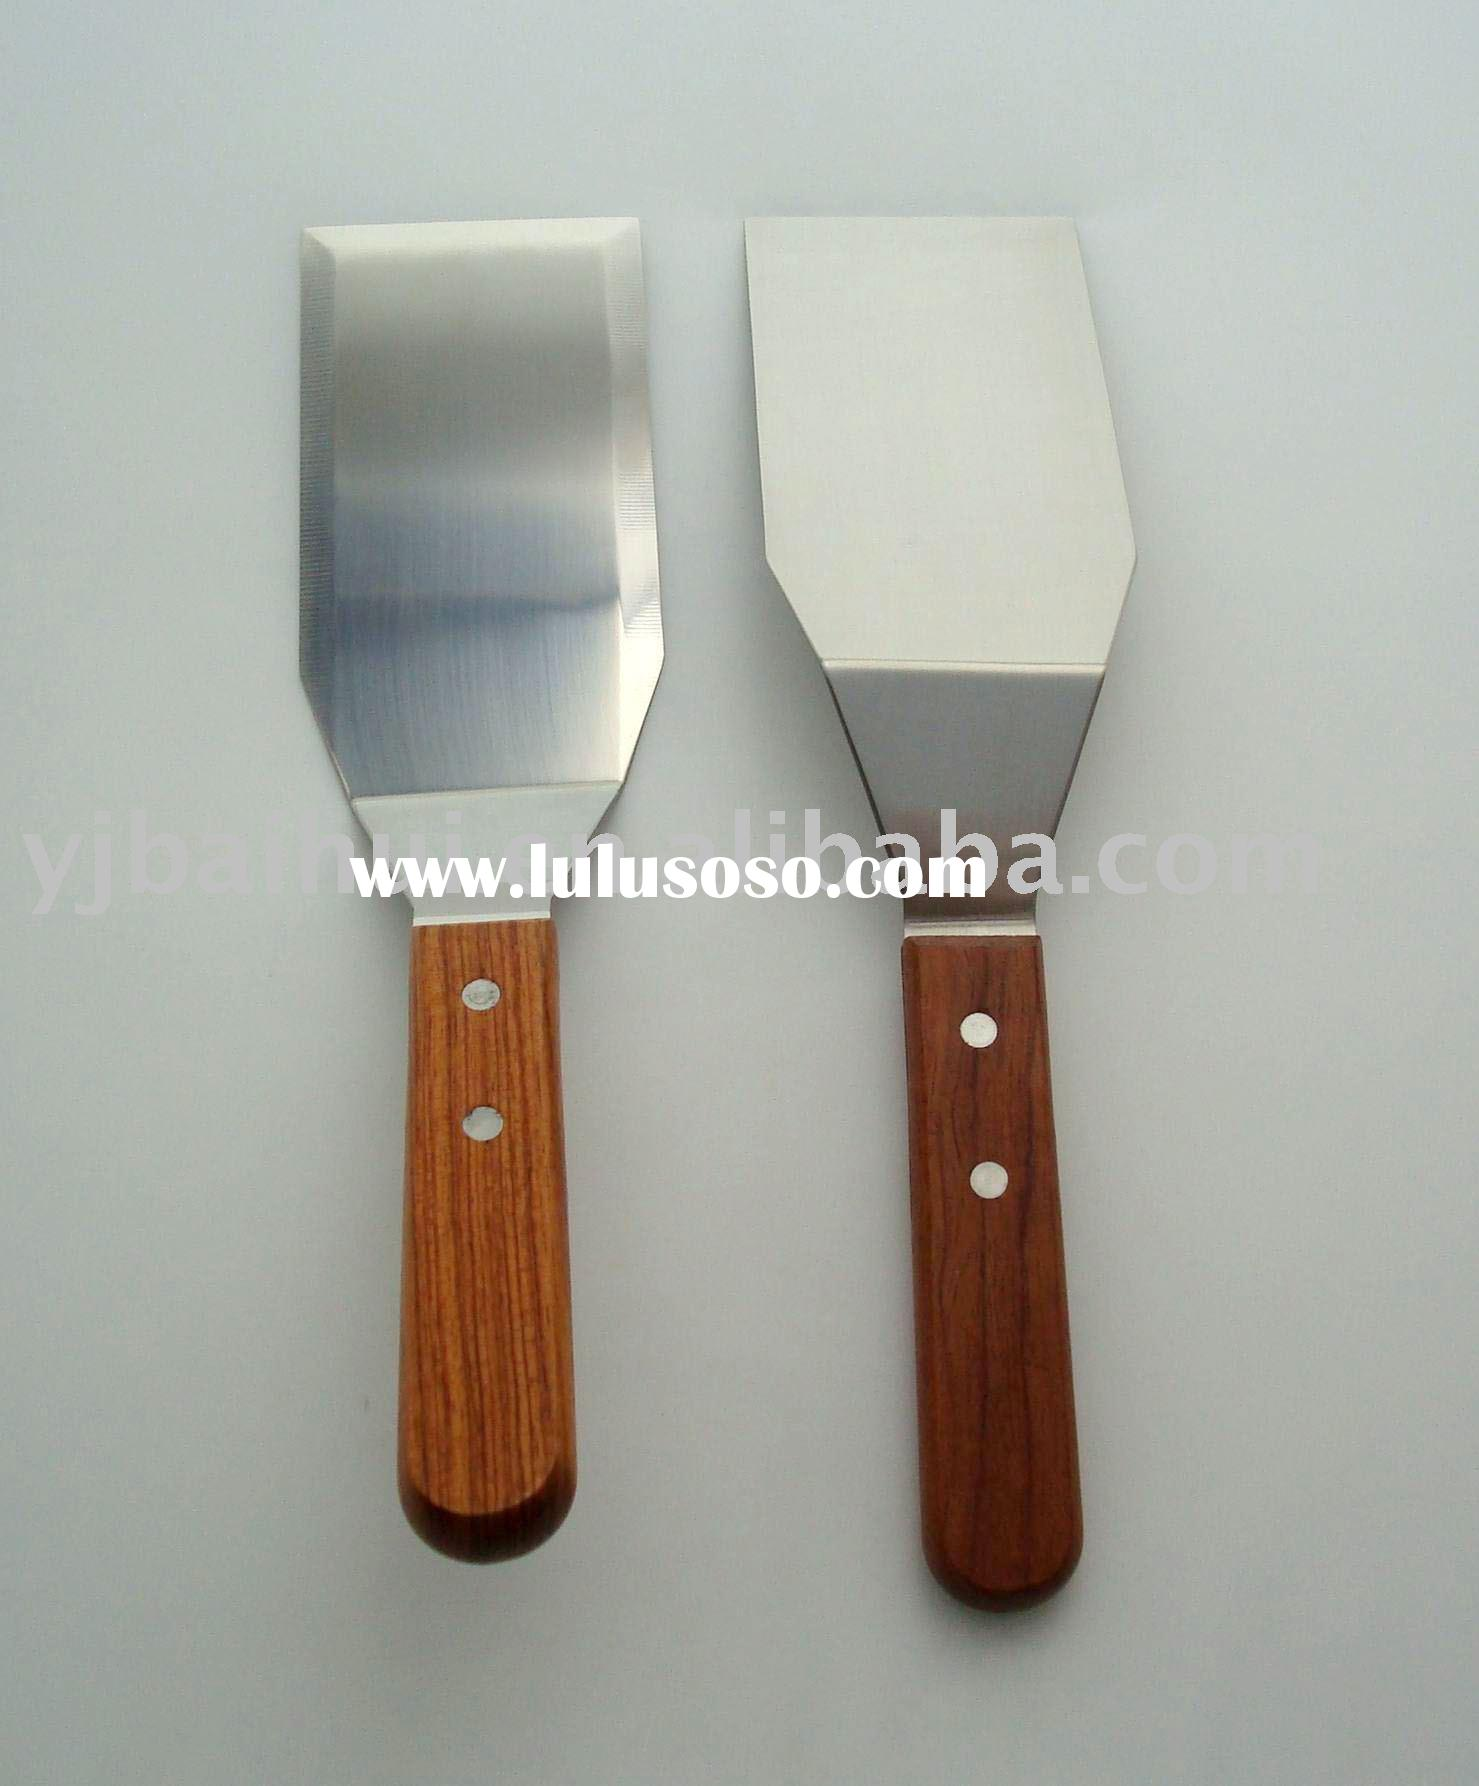 Wood Handled Spatula Spatula With Wooden Handle